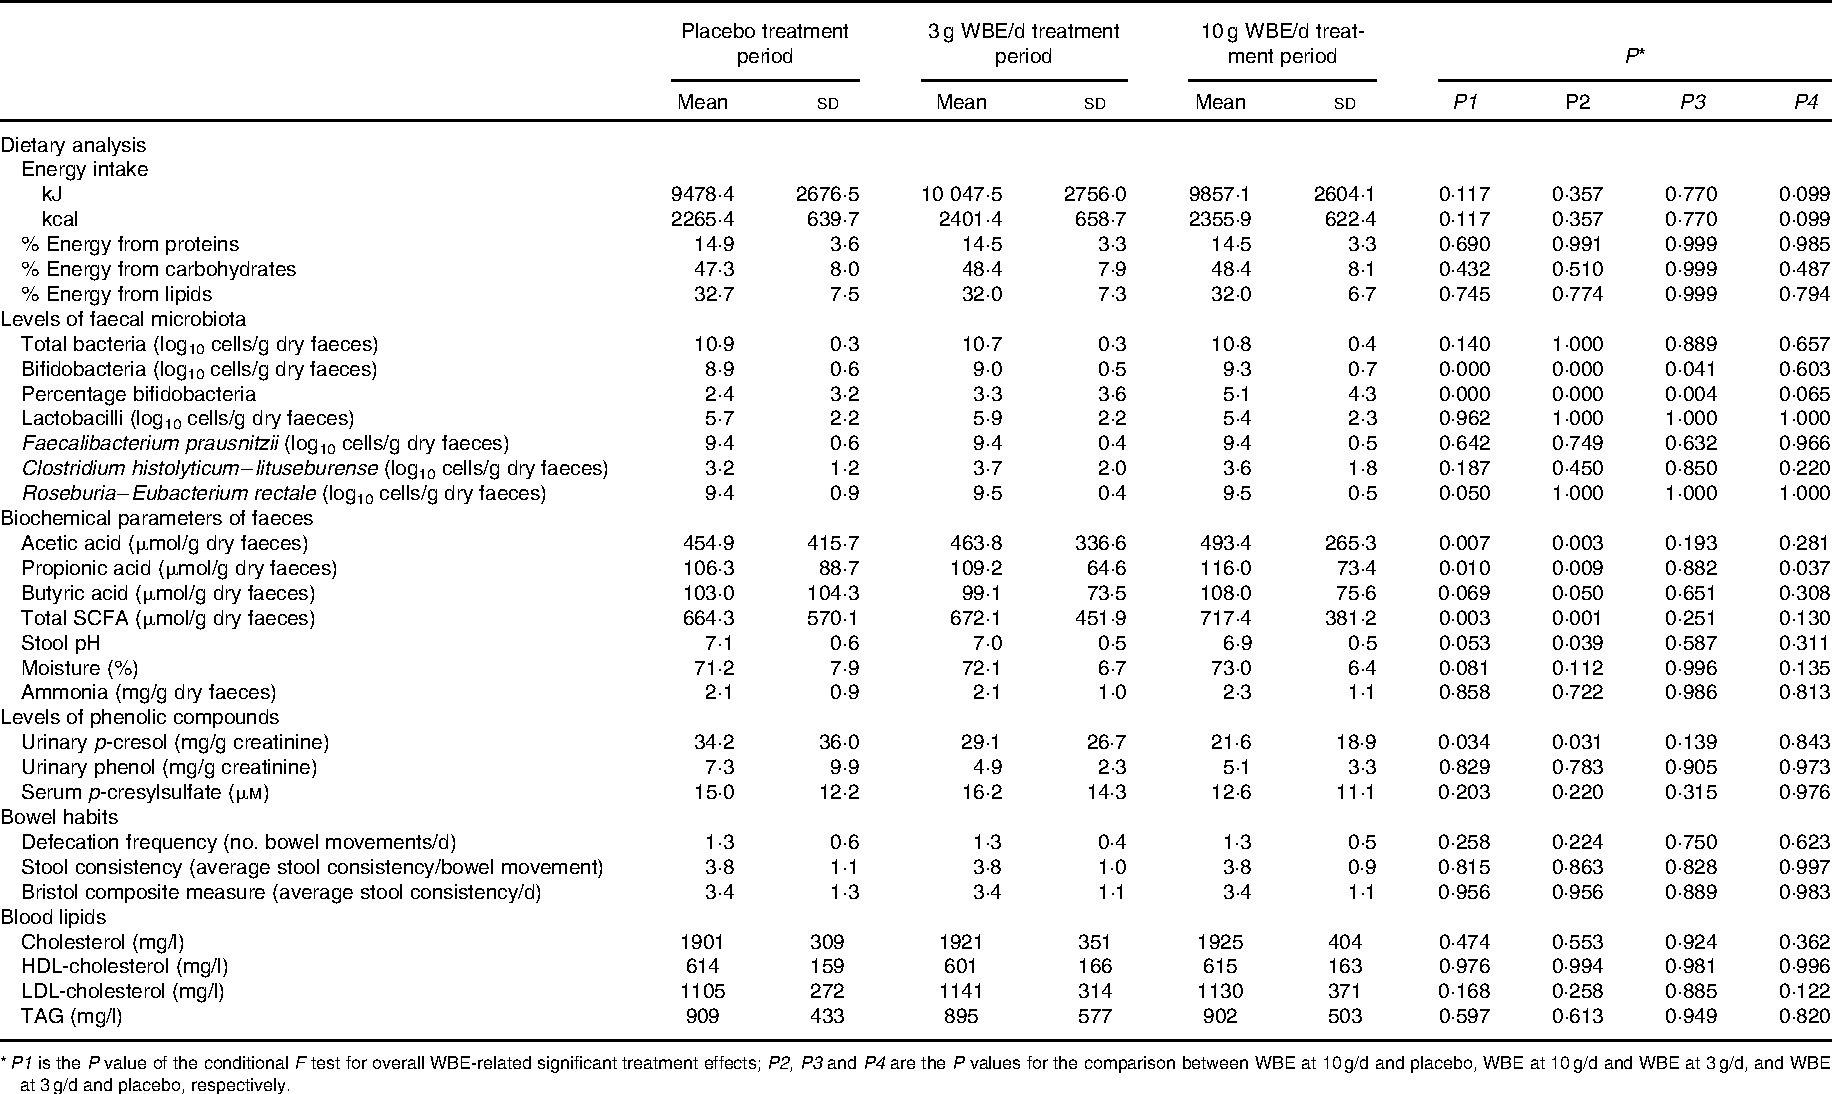 Table 4. Efficacy variables during a human intervention study following intake of placebo, wheat bran extract (WBE) at 3 g/d or WBE at 10 g/d (Mean values and standard deviations)